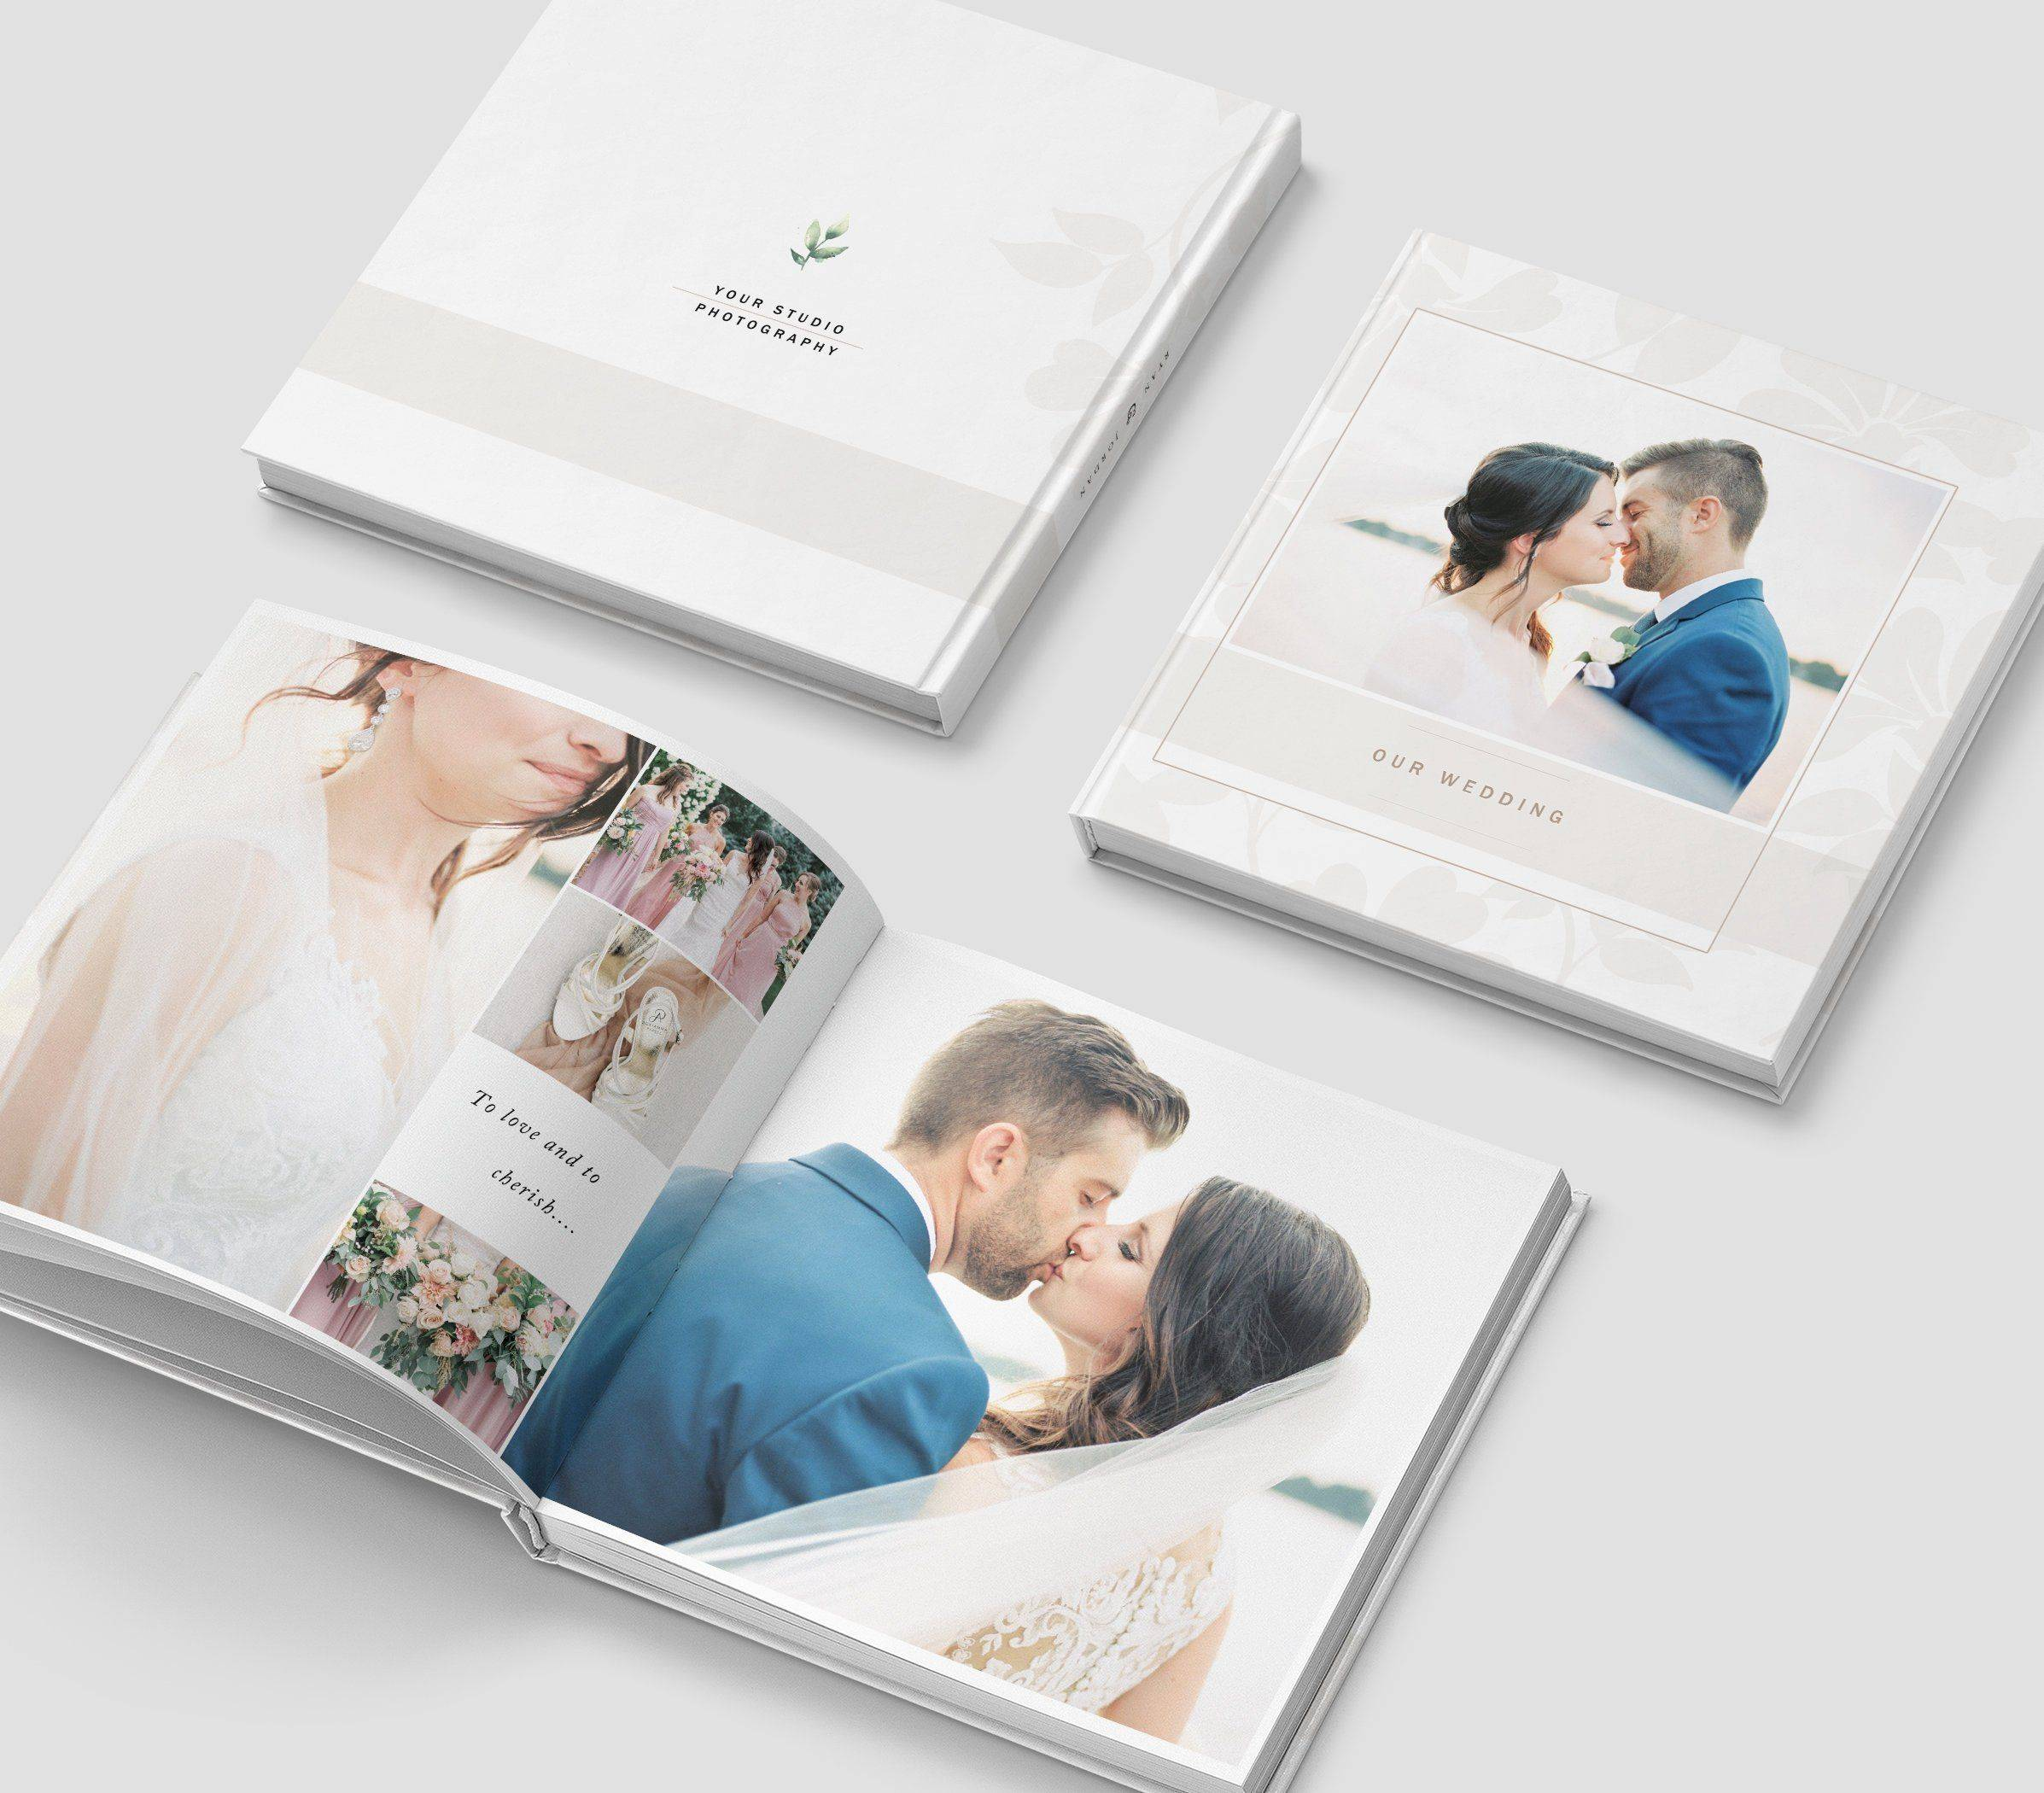 Wedding Album Photoshop Templates For Photographers